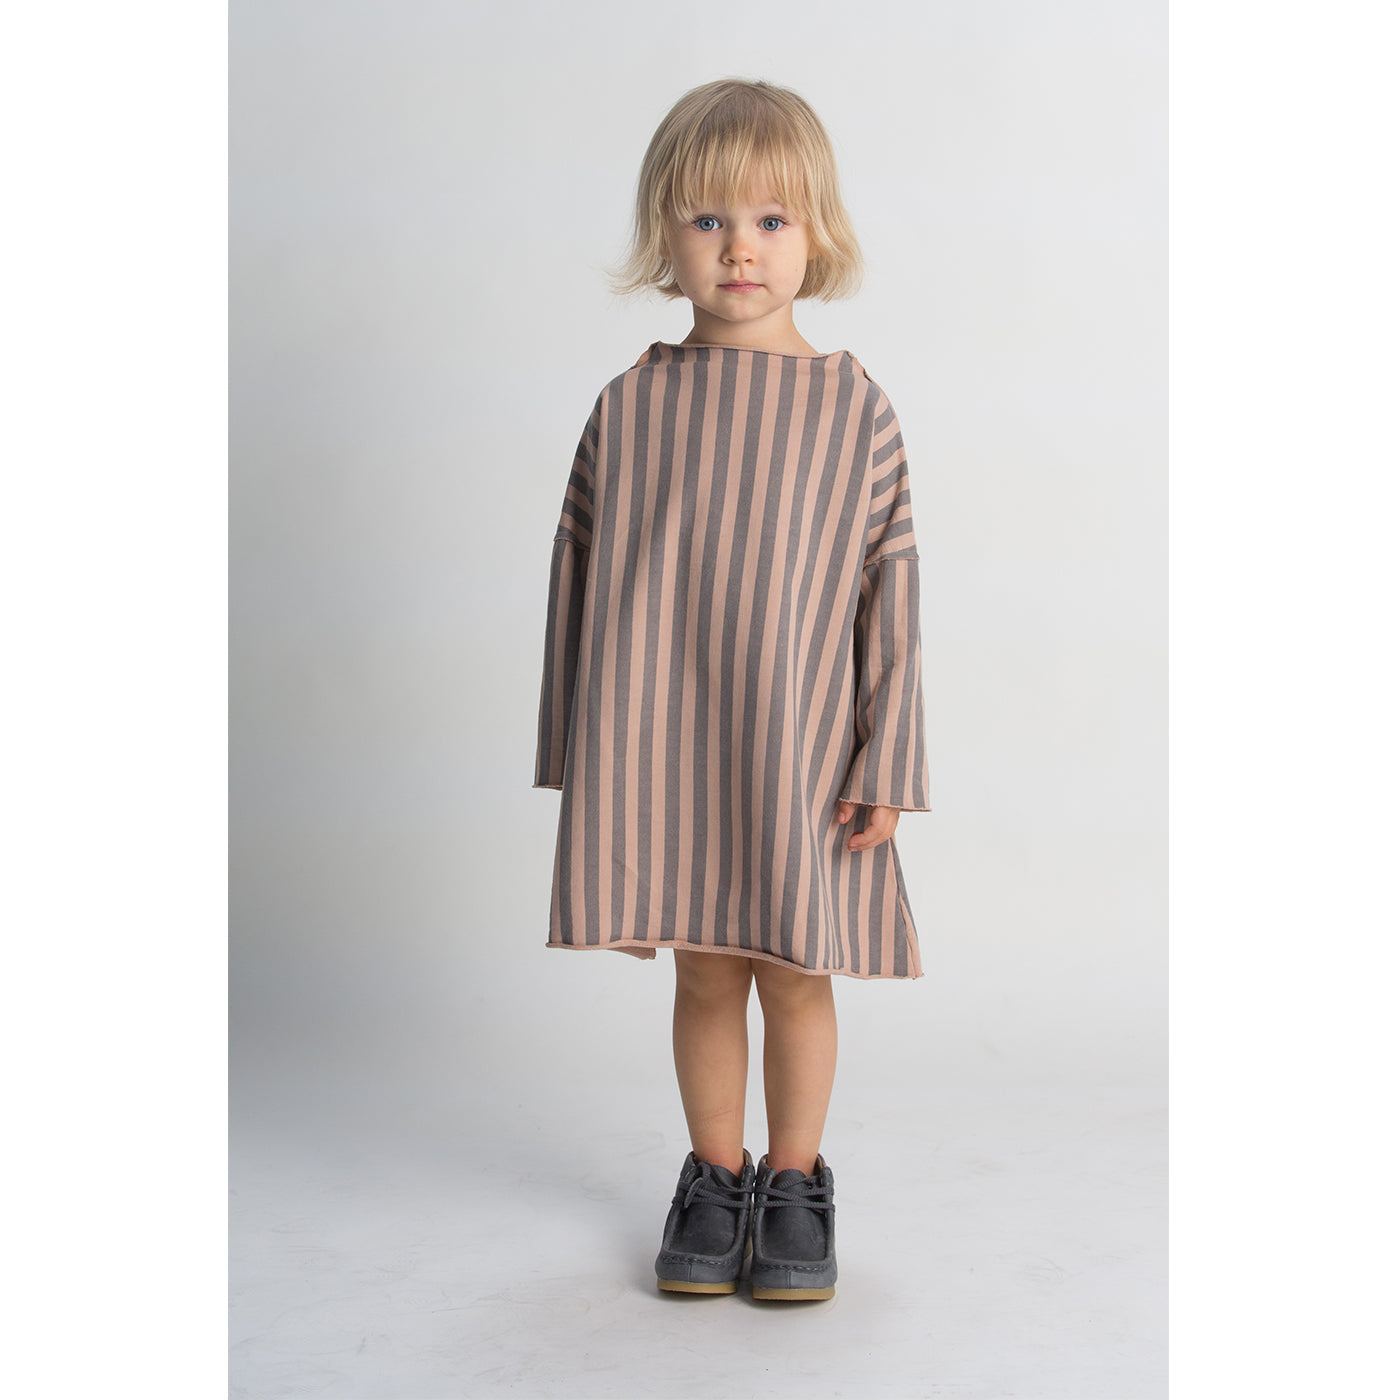 Pullover Dress - Taupe Stripe Lifestyle